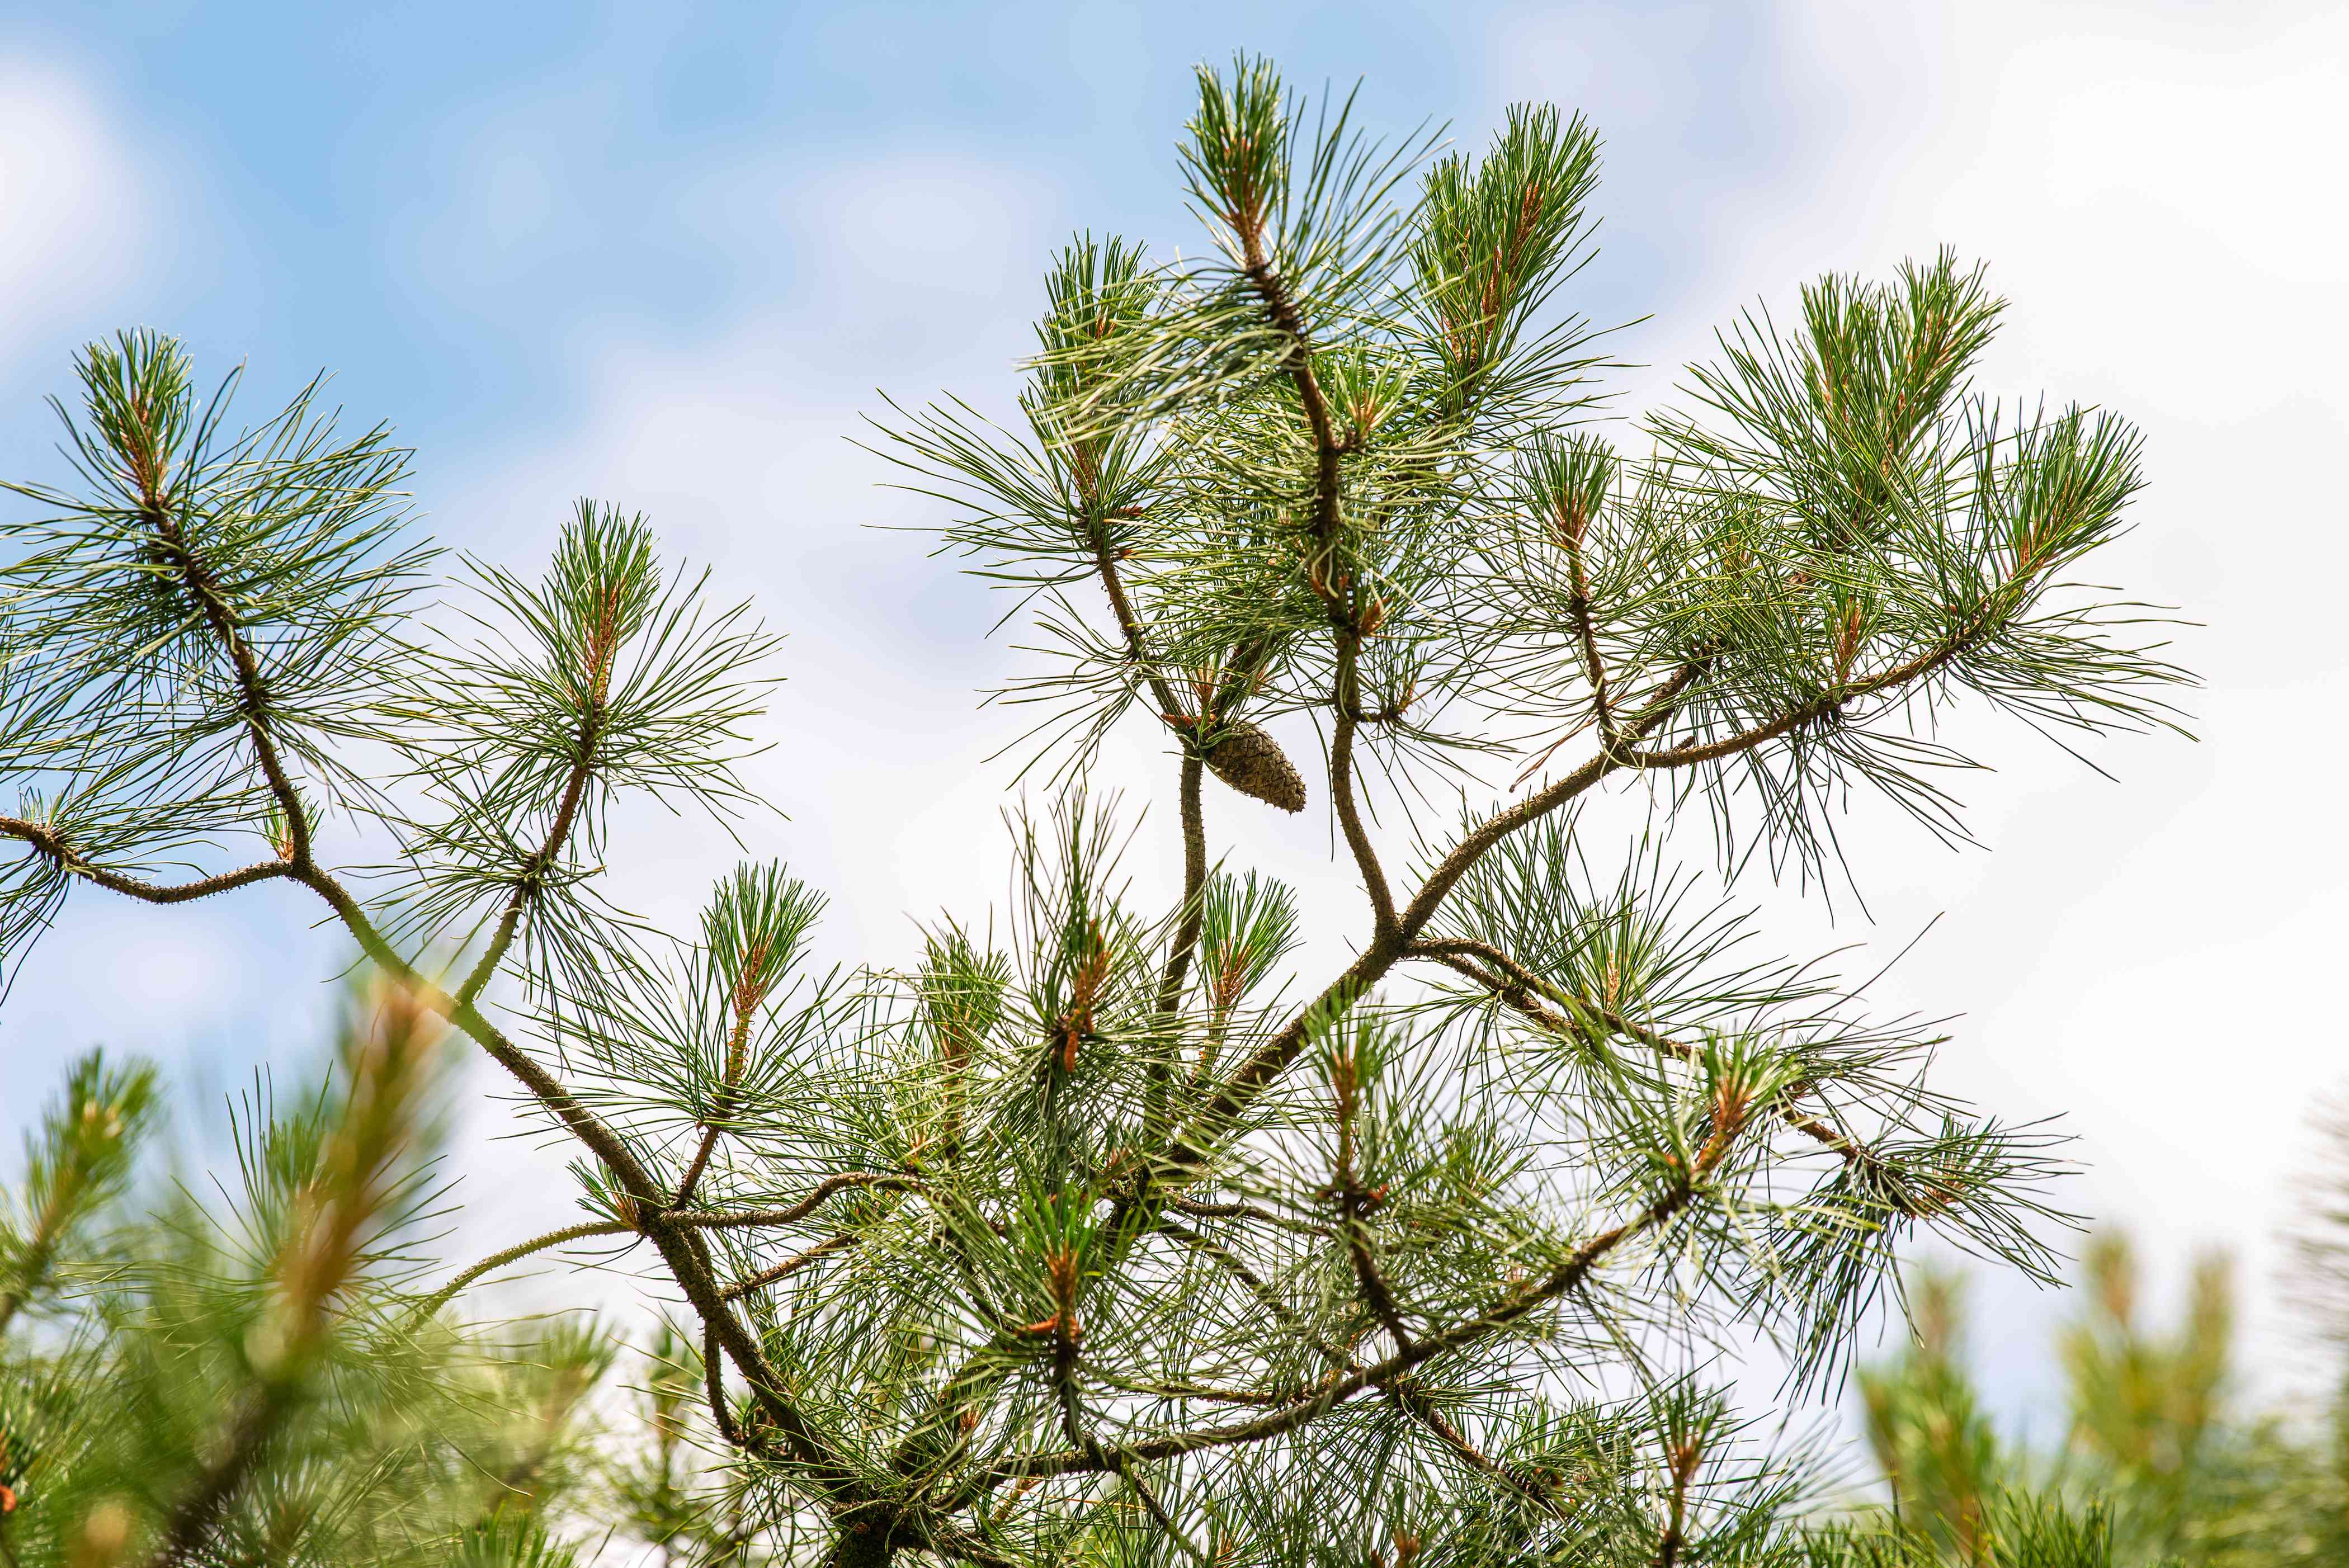 Pitch pine tree with dark green needles and small pinecones on twisted branches